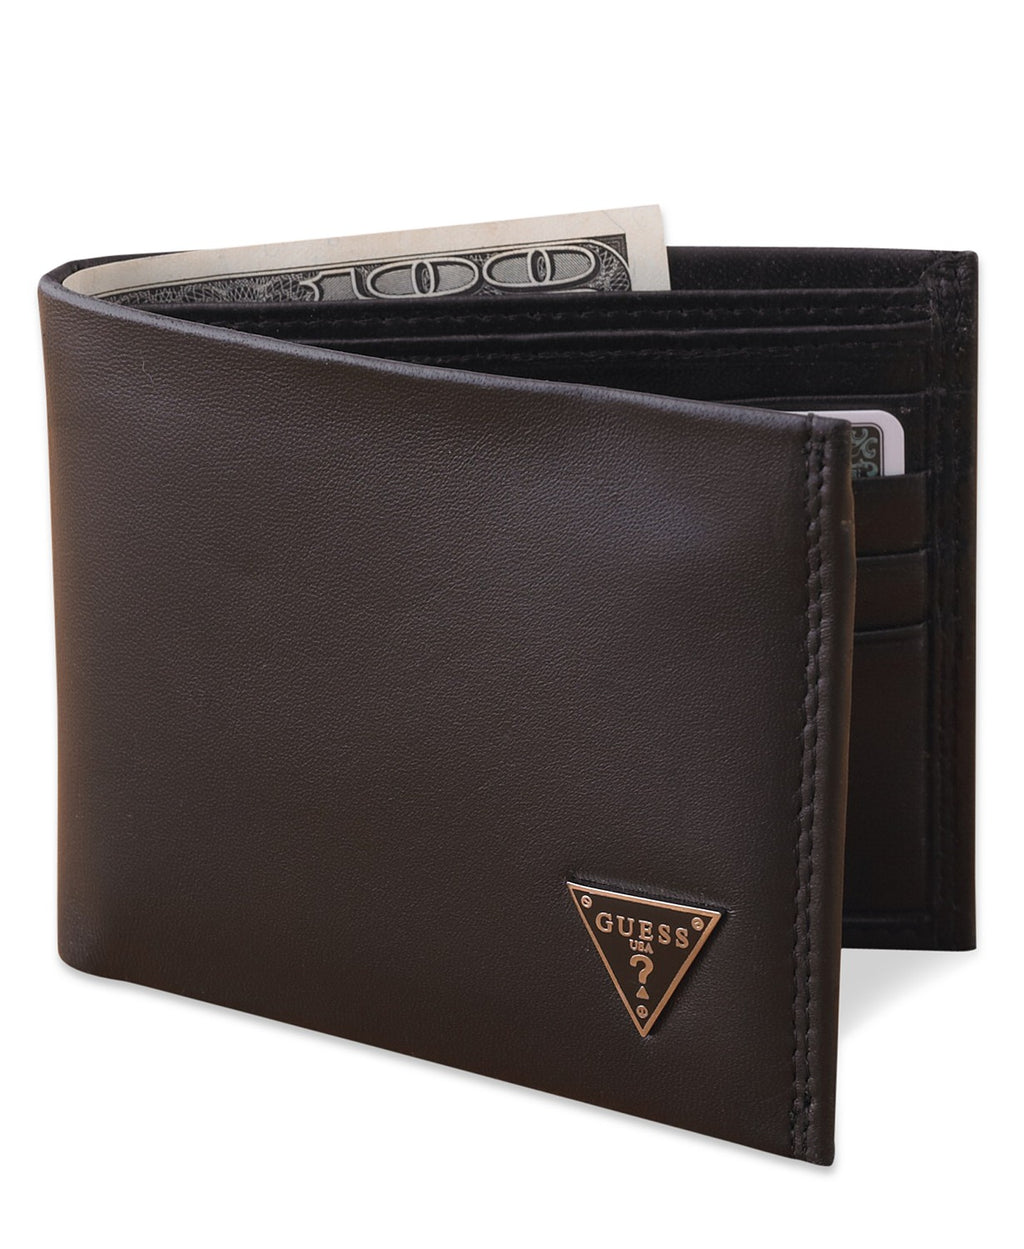 Guess Leather Men's Wallet